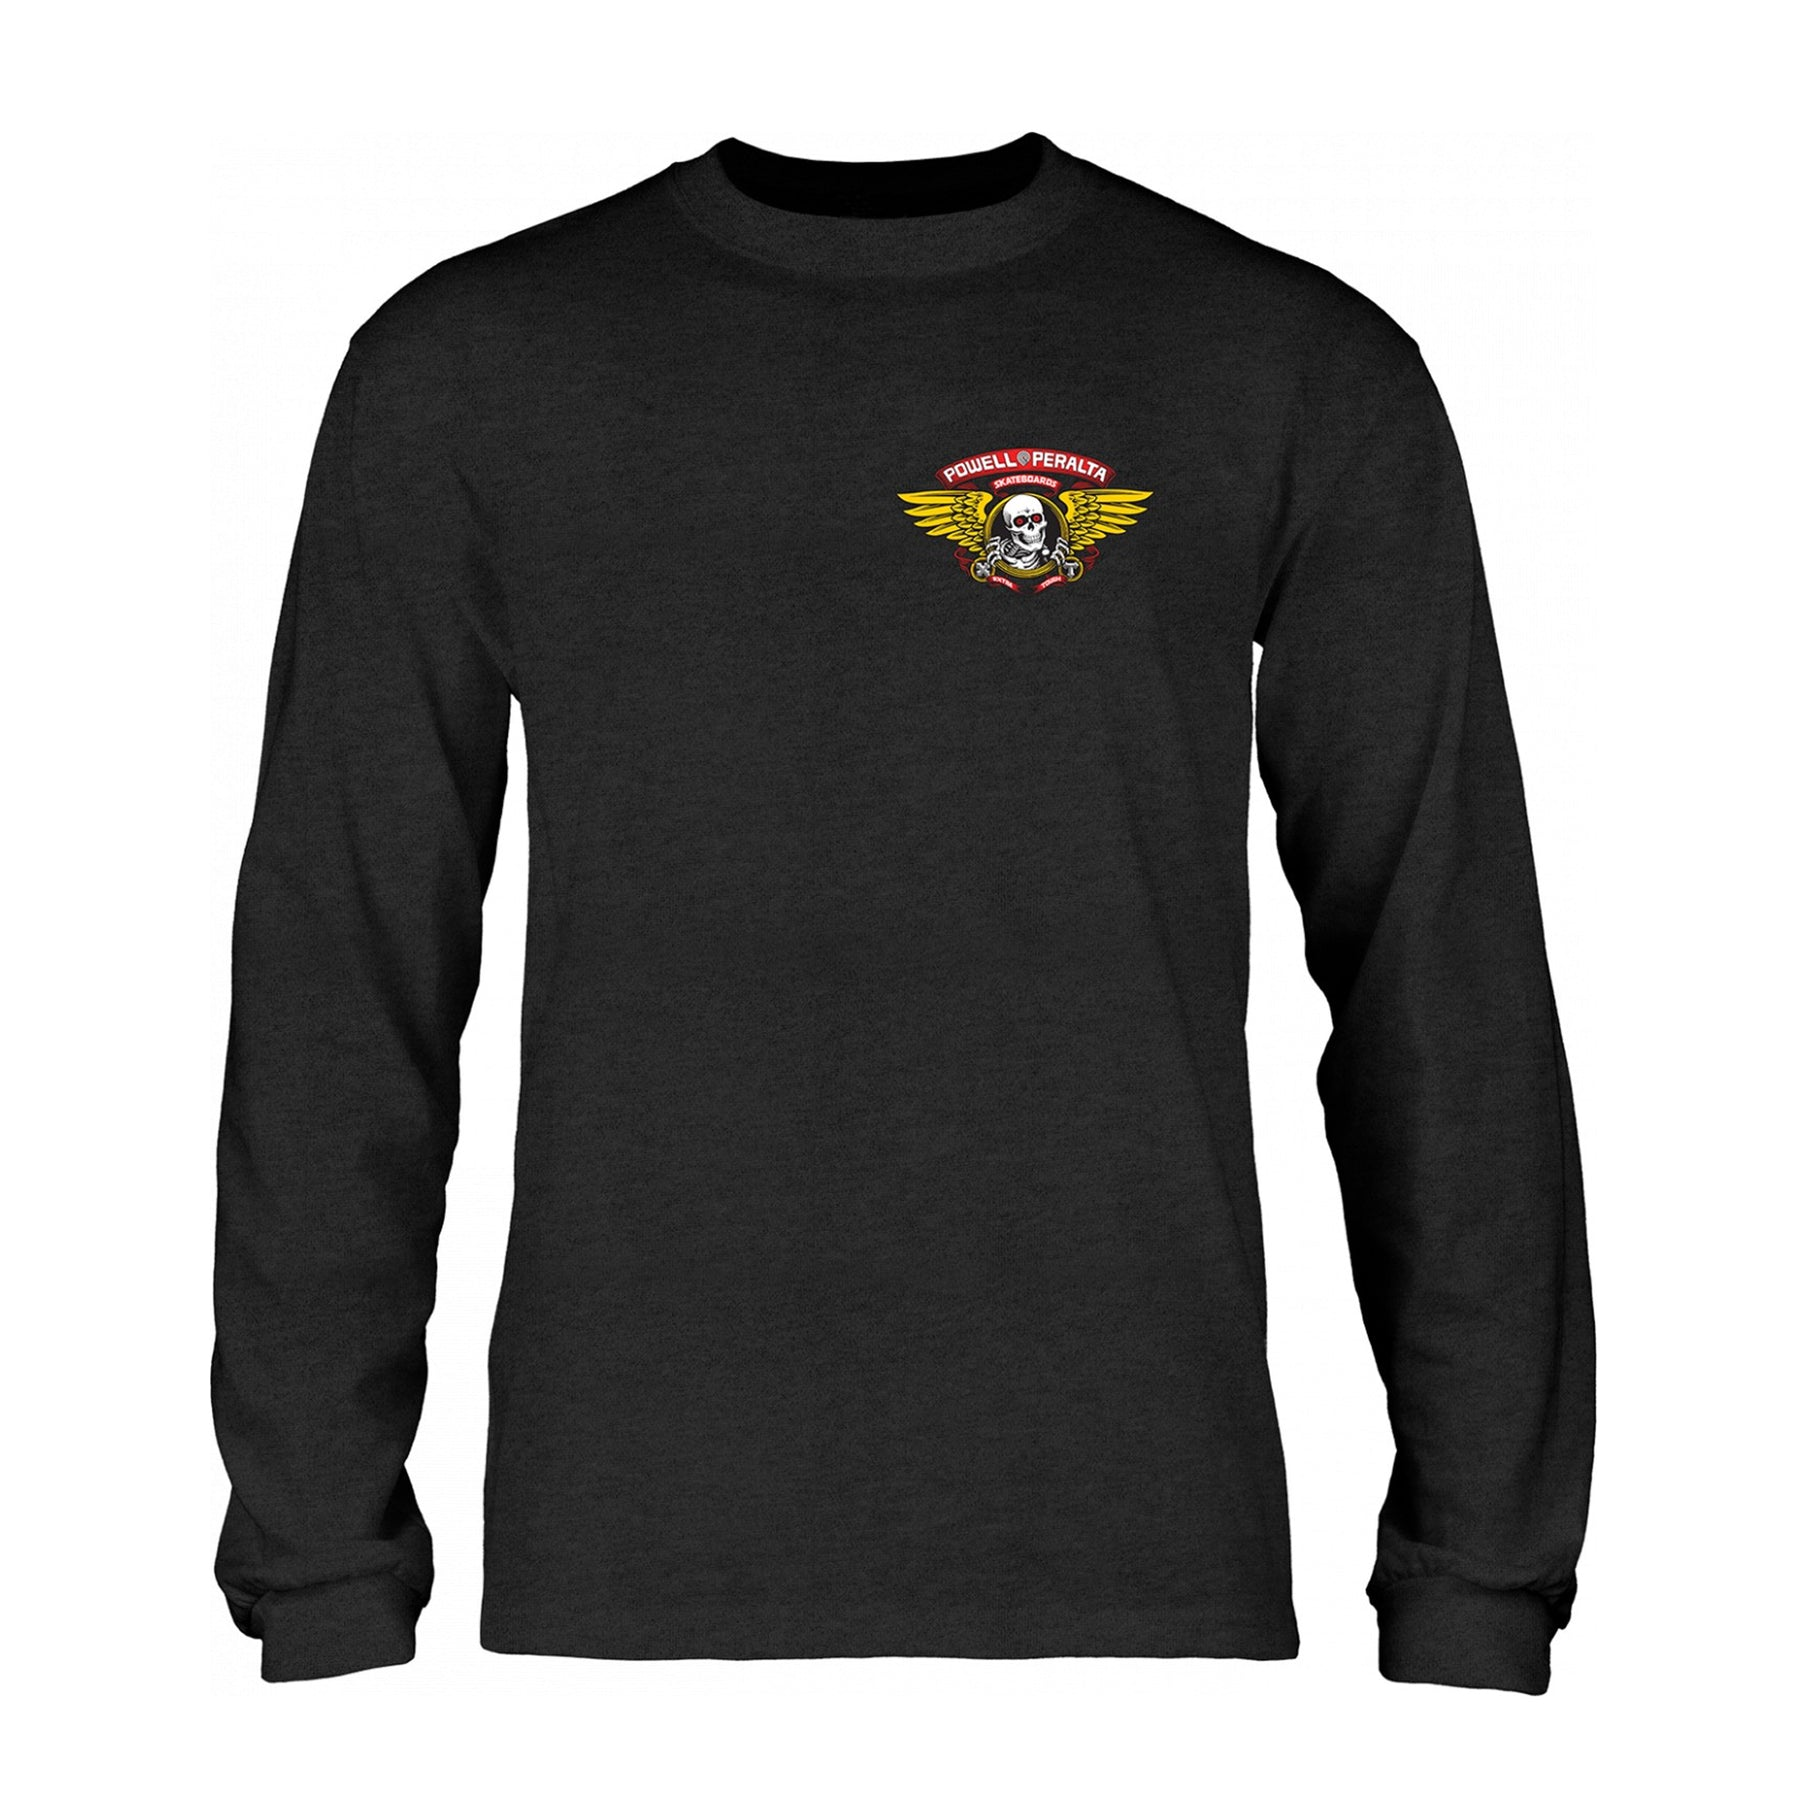 f7c2e3678b63 POWELL PERALTA WINGED RIP LONG-SLEEVE CHARCOAL HEATHER – Urban Ave ...